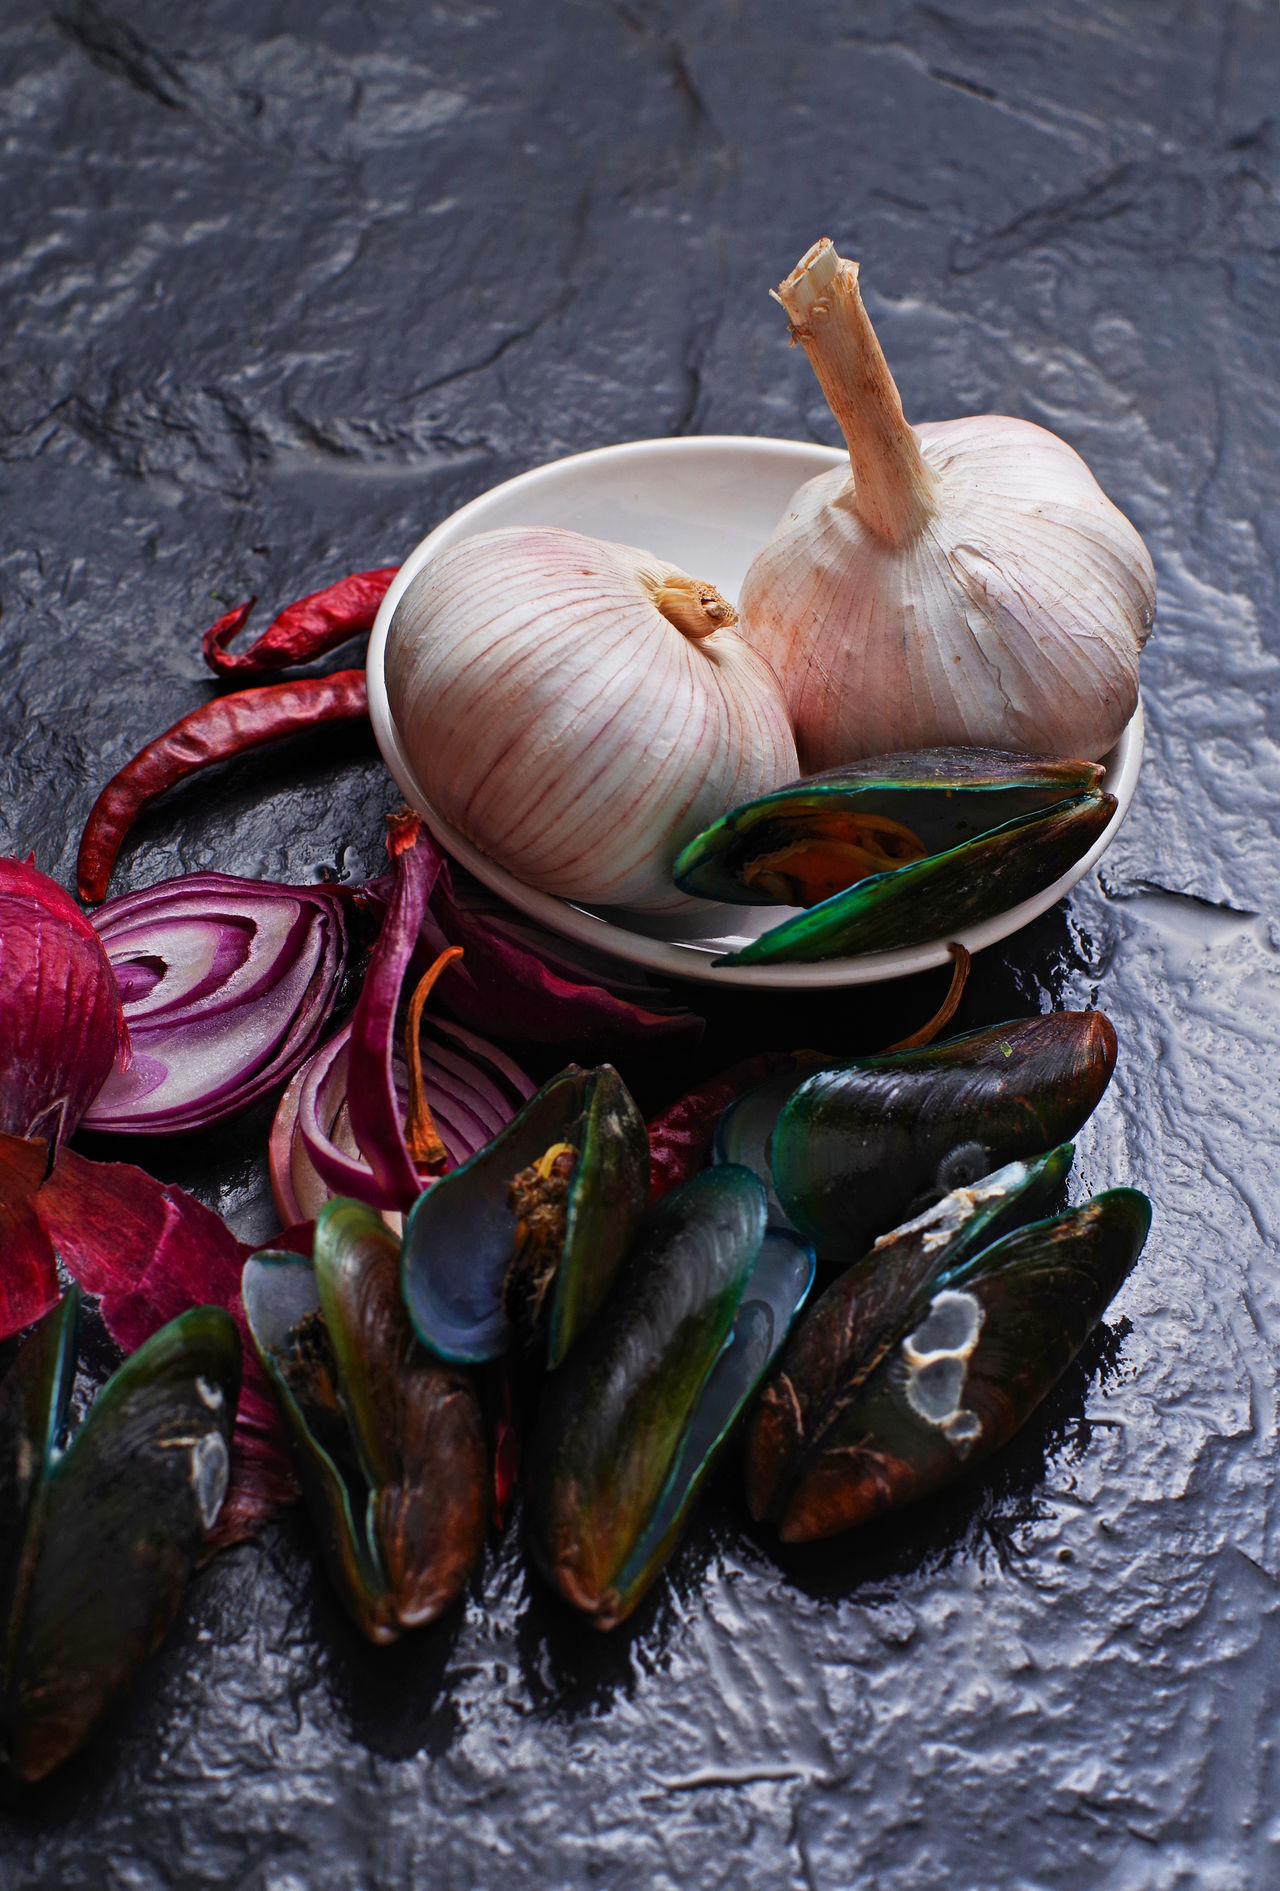 Black Background Close-up Cooking Food Preparation Garlic Ingredients Mussel No People Red Chili Pepper Seafood Shallot Studio Shot